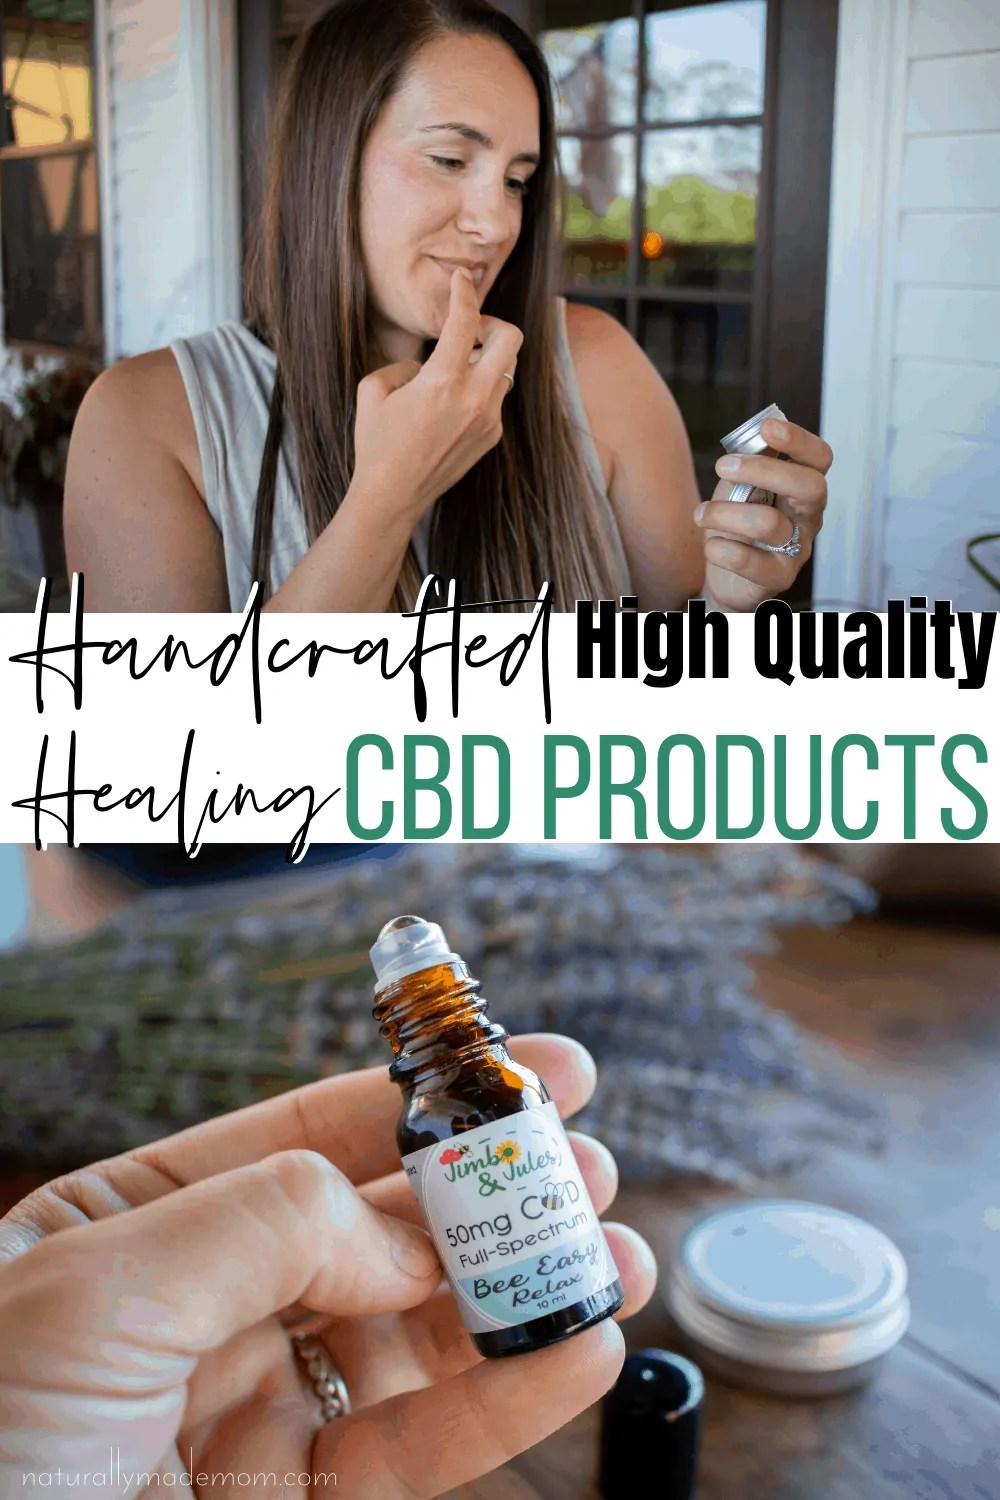 Where to buy organic CBD oil